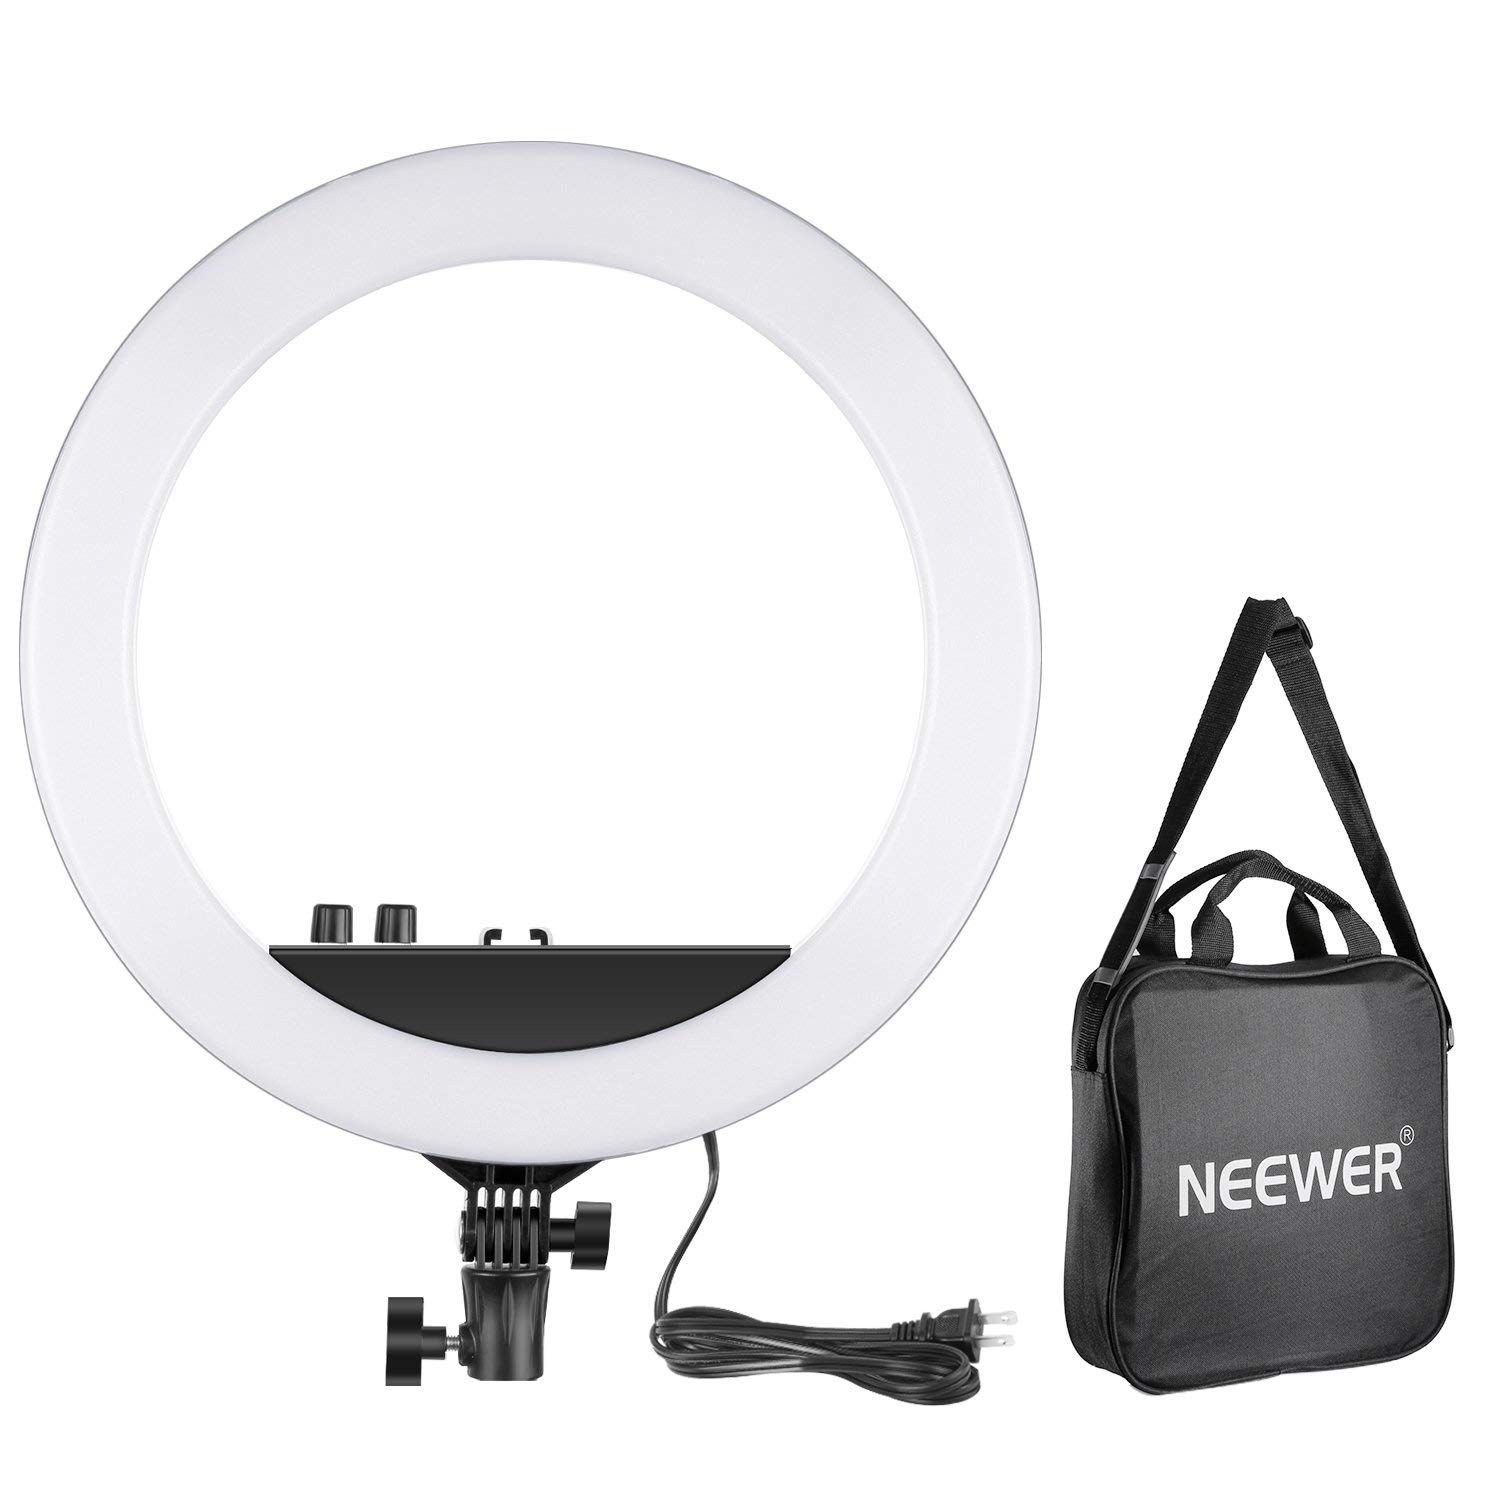 Neewer 14-inch Outer Dimmable Bi-Color LED Ring Light 30W 3200k-5600K Small Ring Light for Photo Portrait Photography, Make Up, YouTube Video Shooting